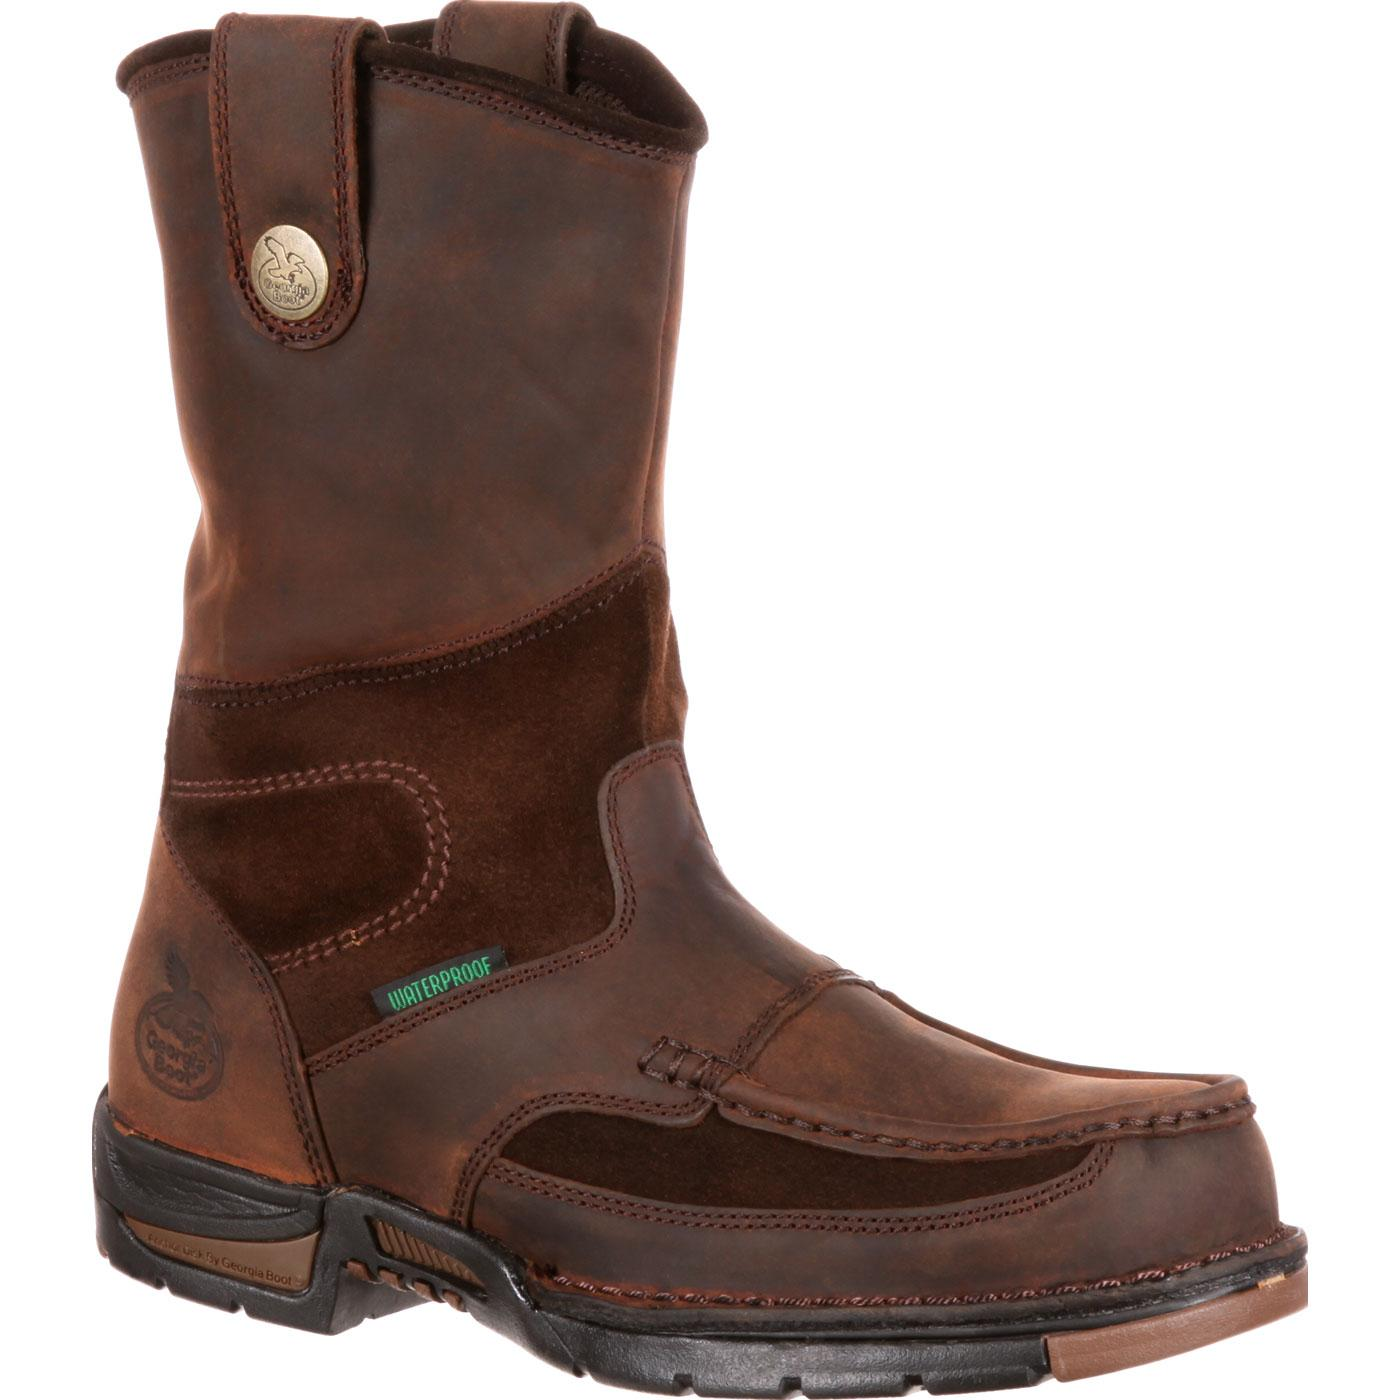 Georgia Athens Waterproof Wellington Work Boot, Style G4403